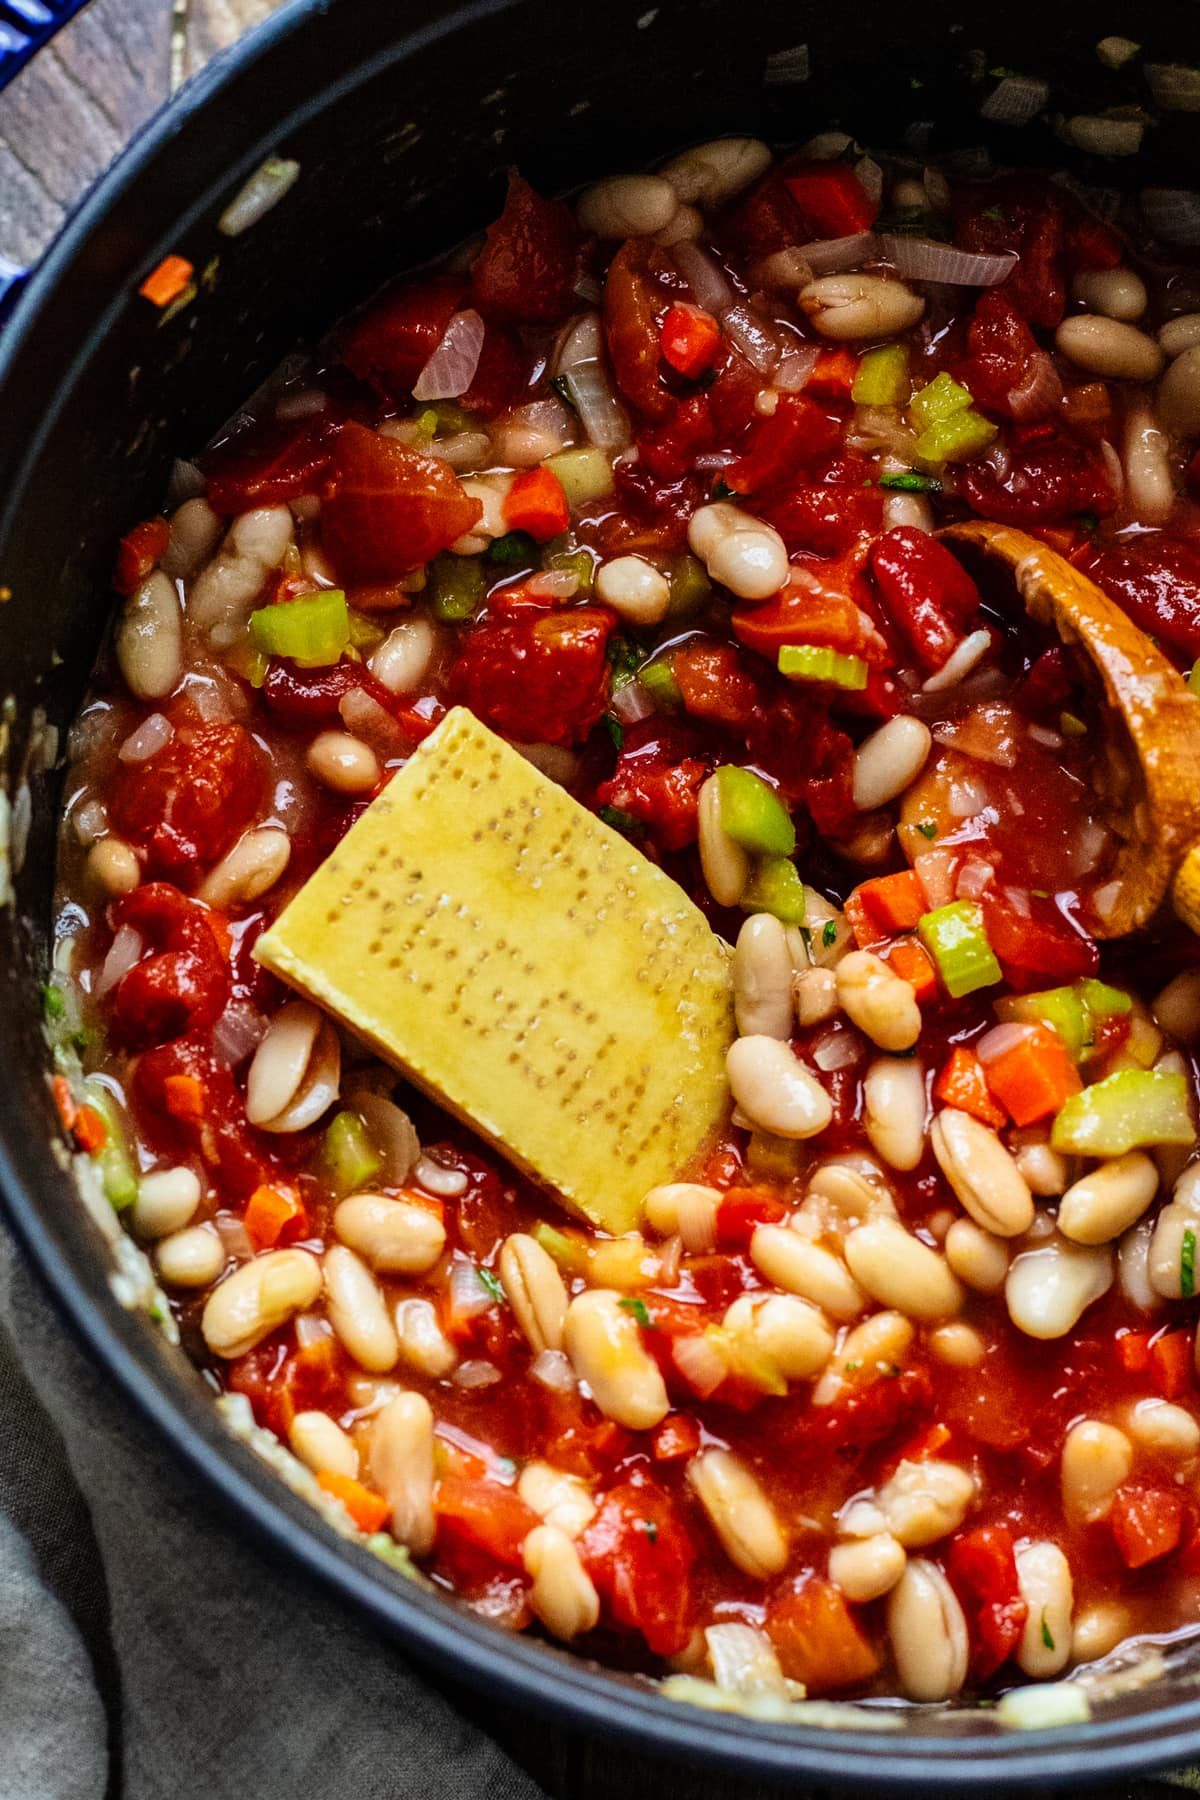 parmesan rind in a pot with tomatoes and white beans.